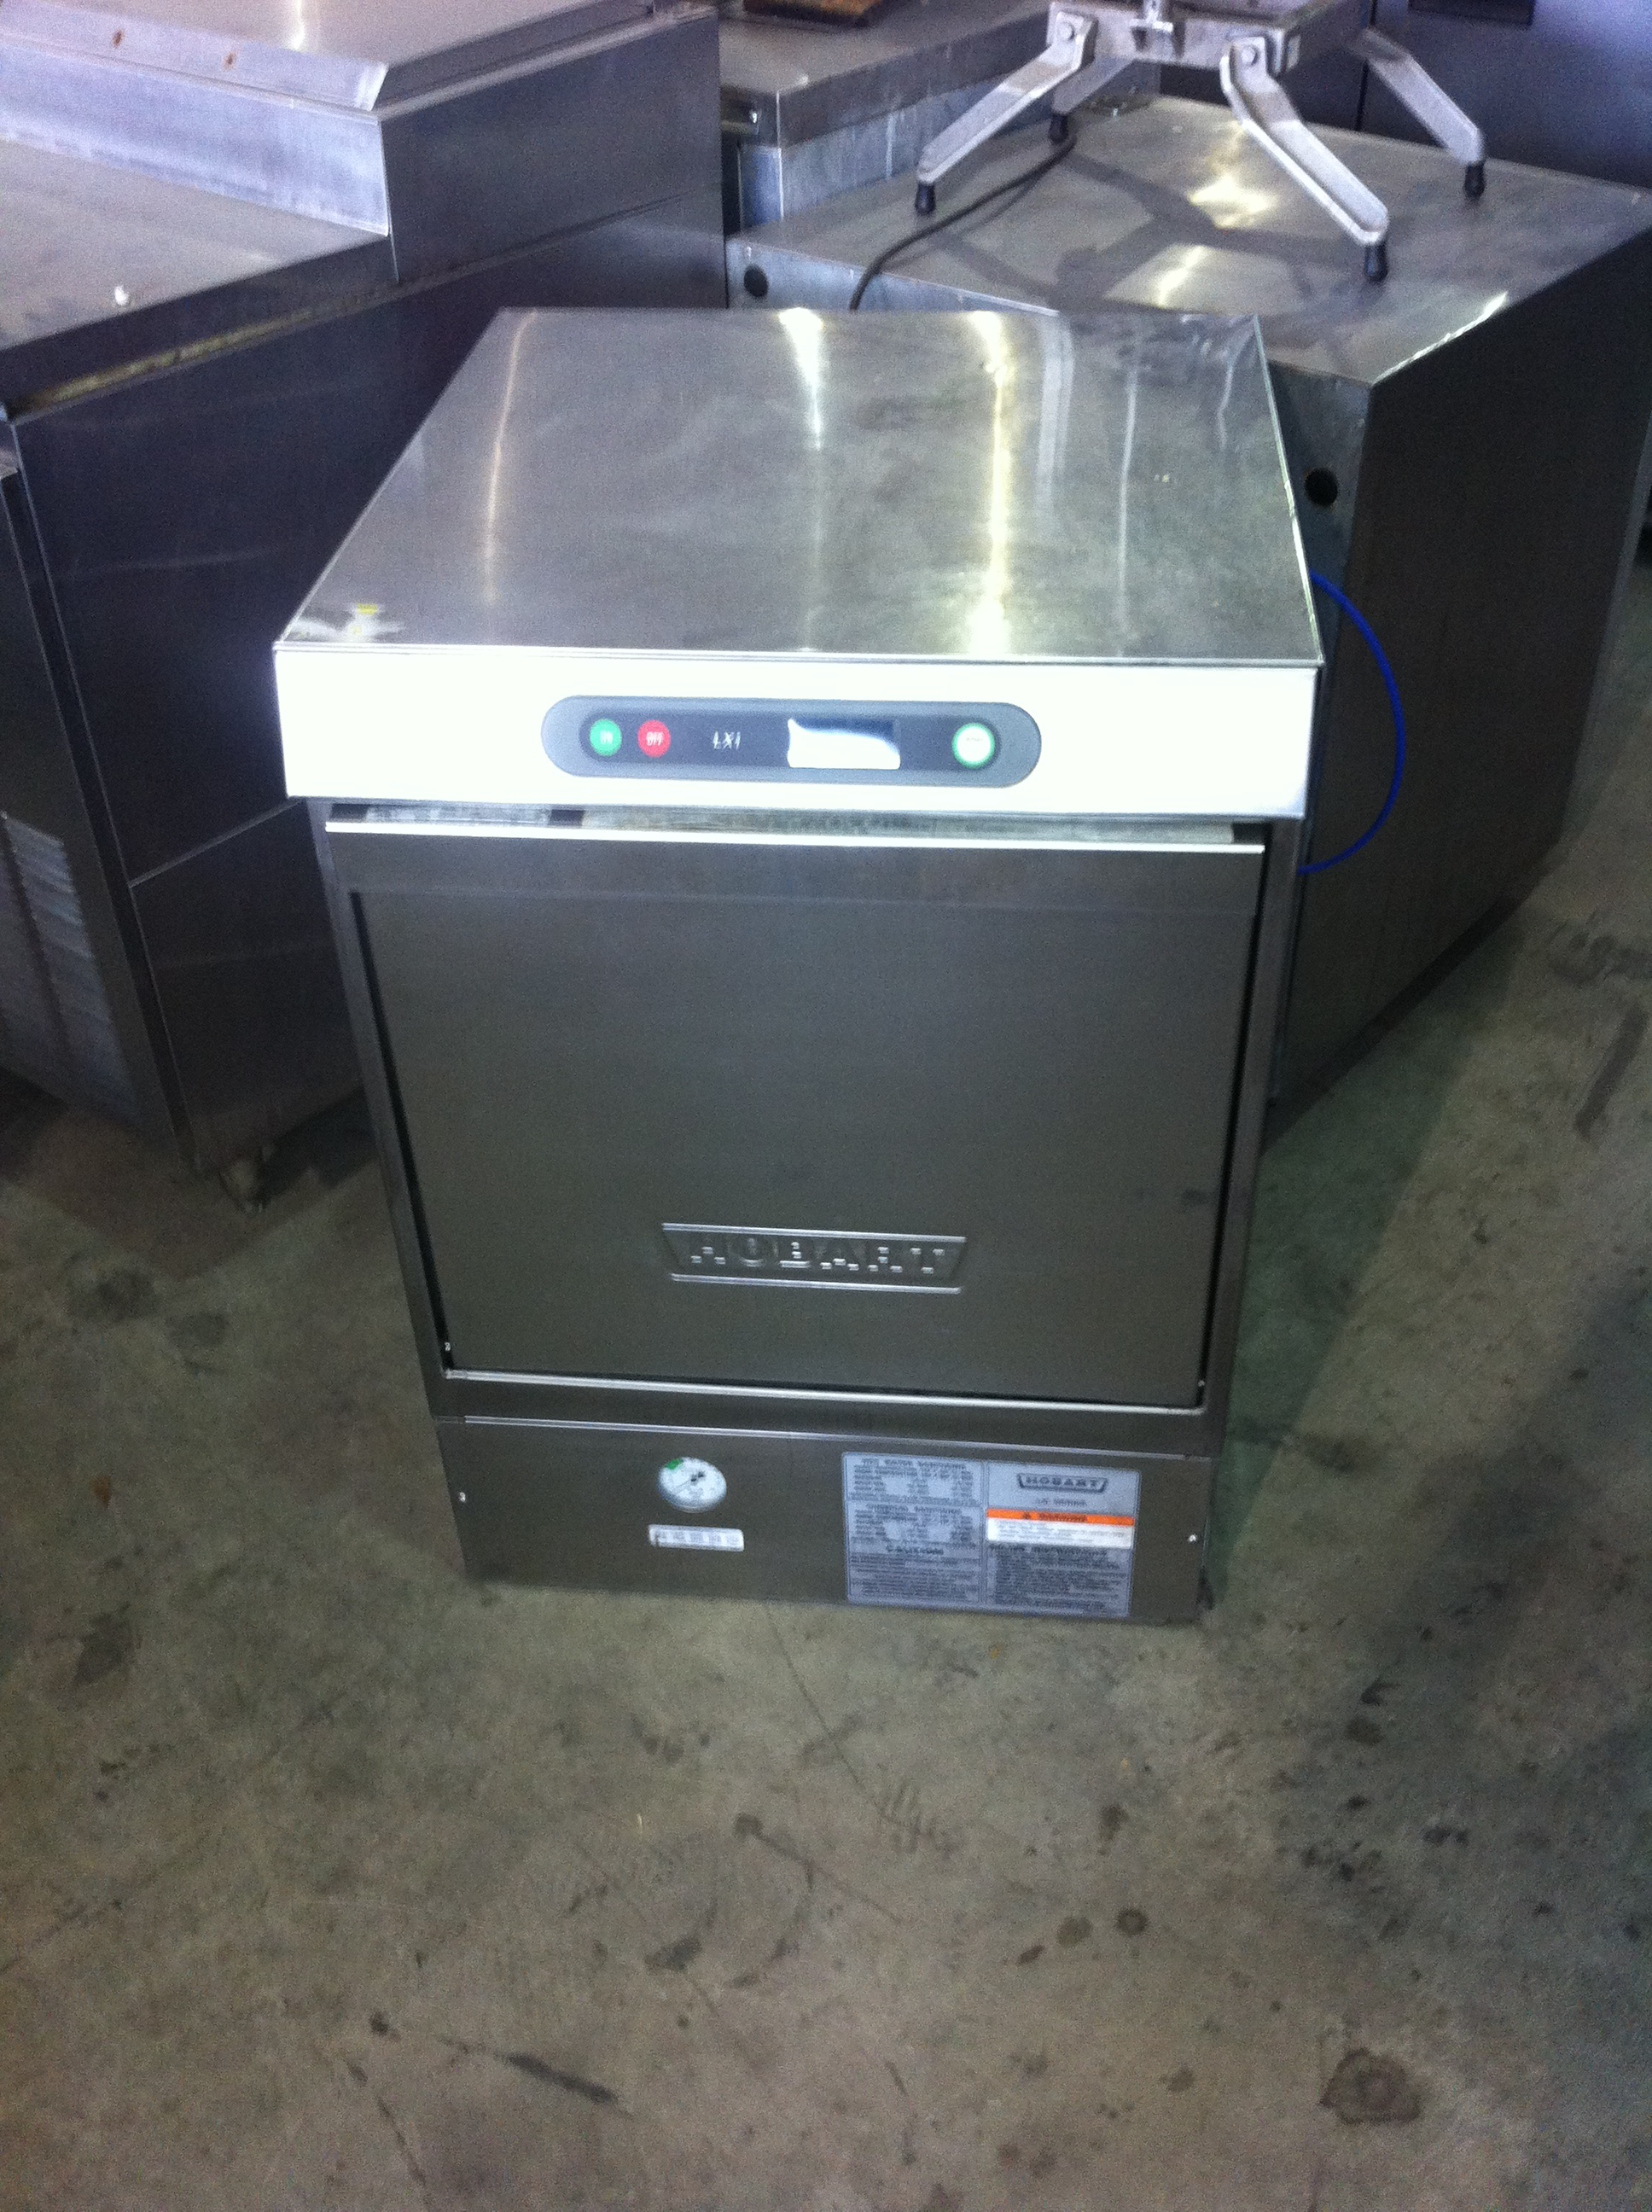 Hobart Lxi Under Counter Dishwasher On Sale Now One Fat